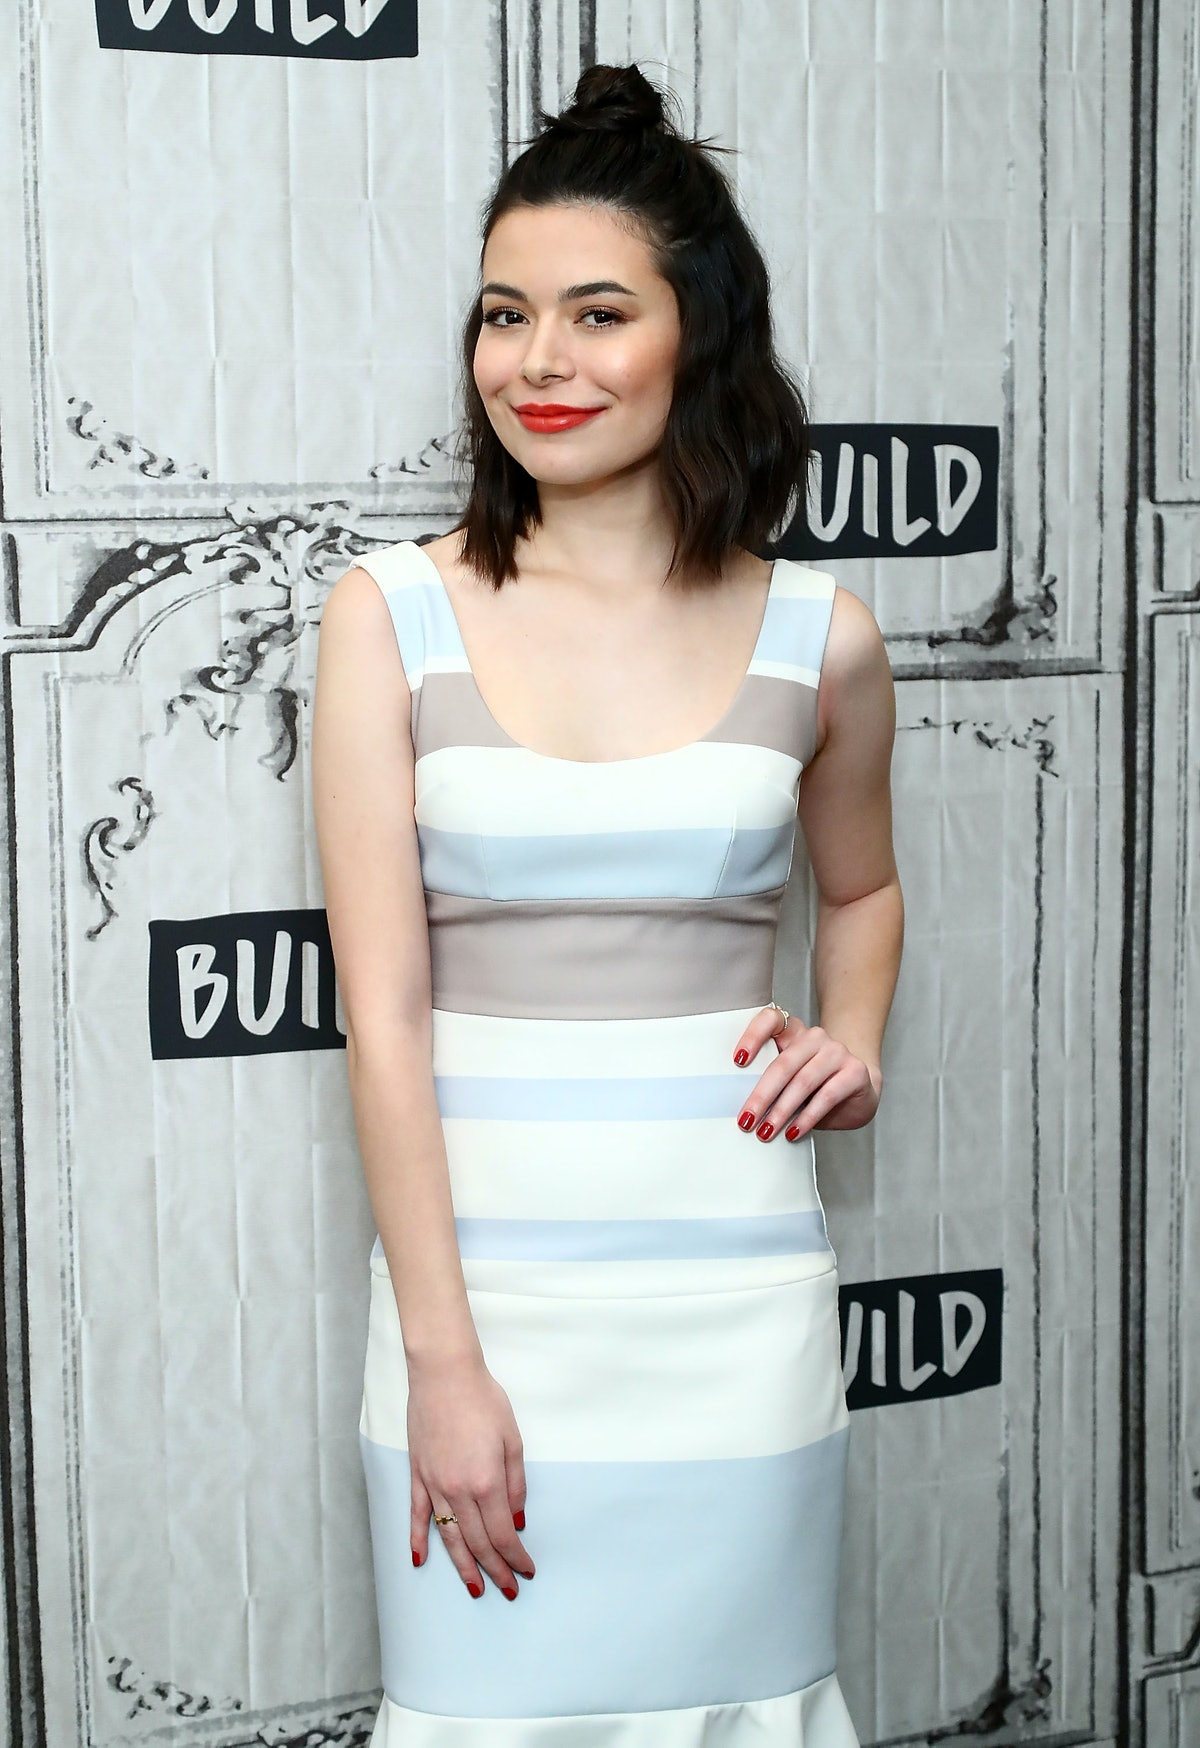 """NEW YORK, NY - DECEMBER 07:  Actress  Miranda Cosgrove discusses """"Despicable Me 3"""" at Build studio on December 7, 2017 in New York City.  (Photo by Astrid Stawiarz/Getty Images)"""